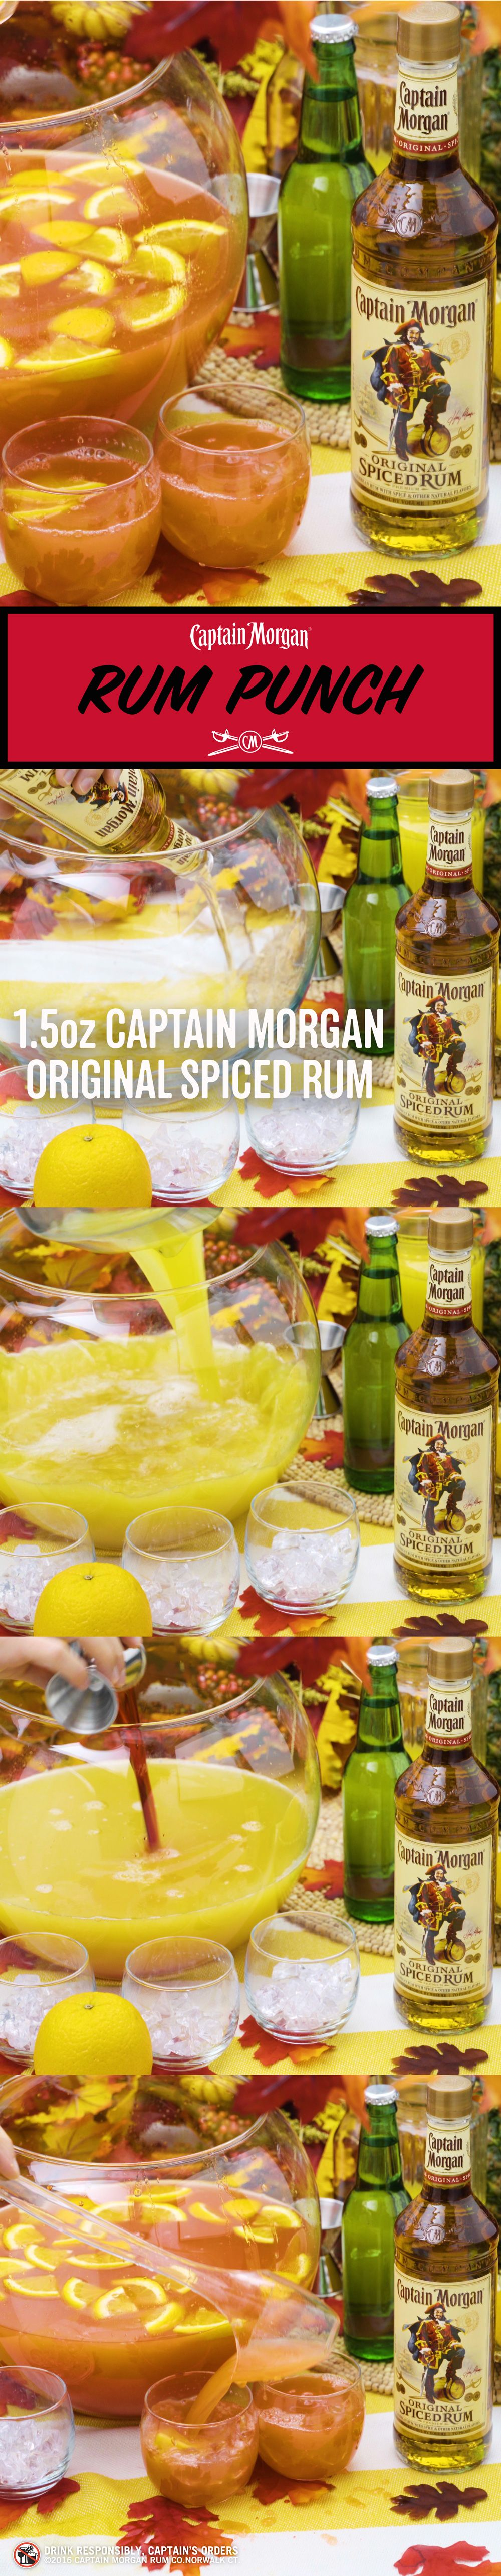 Fall is the perfect time for sharing. Coincidently, fall is the perfect time for Captain's Rum Punch.  Rum Punch Recipe (25 servings): 750mL bottle of Captain Morgan Original Spiced Rum 2 x 46 oz cans of pineapple juice 3 cups orange juice 4.5 oz grenadine 3 cans of lemon-lime soda 3 sliced oranges Get more rum recipes at https://us.captainmorgan.com/rum-cocktails/?utm_source=pinterest&utm_medium=social&utm_term=holidays&utm_content=rum_punch&utm_campaign=recipe